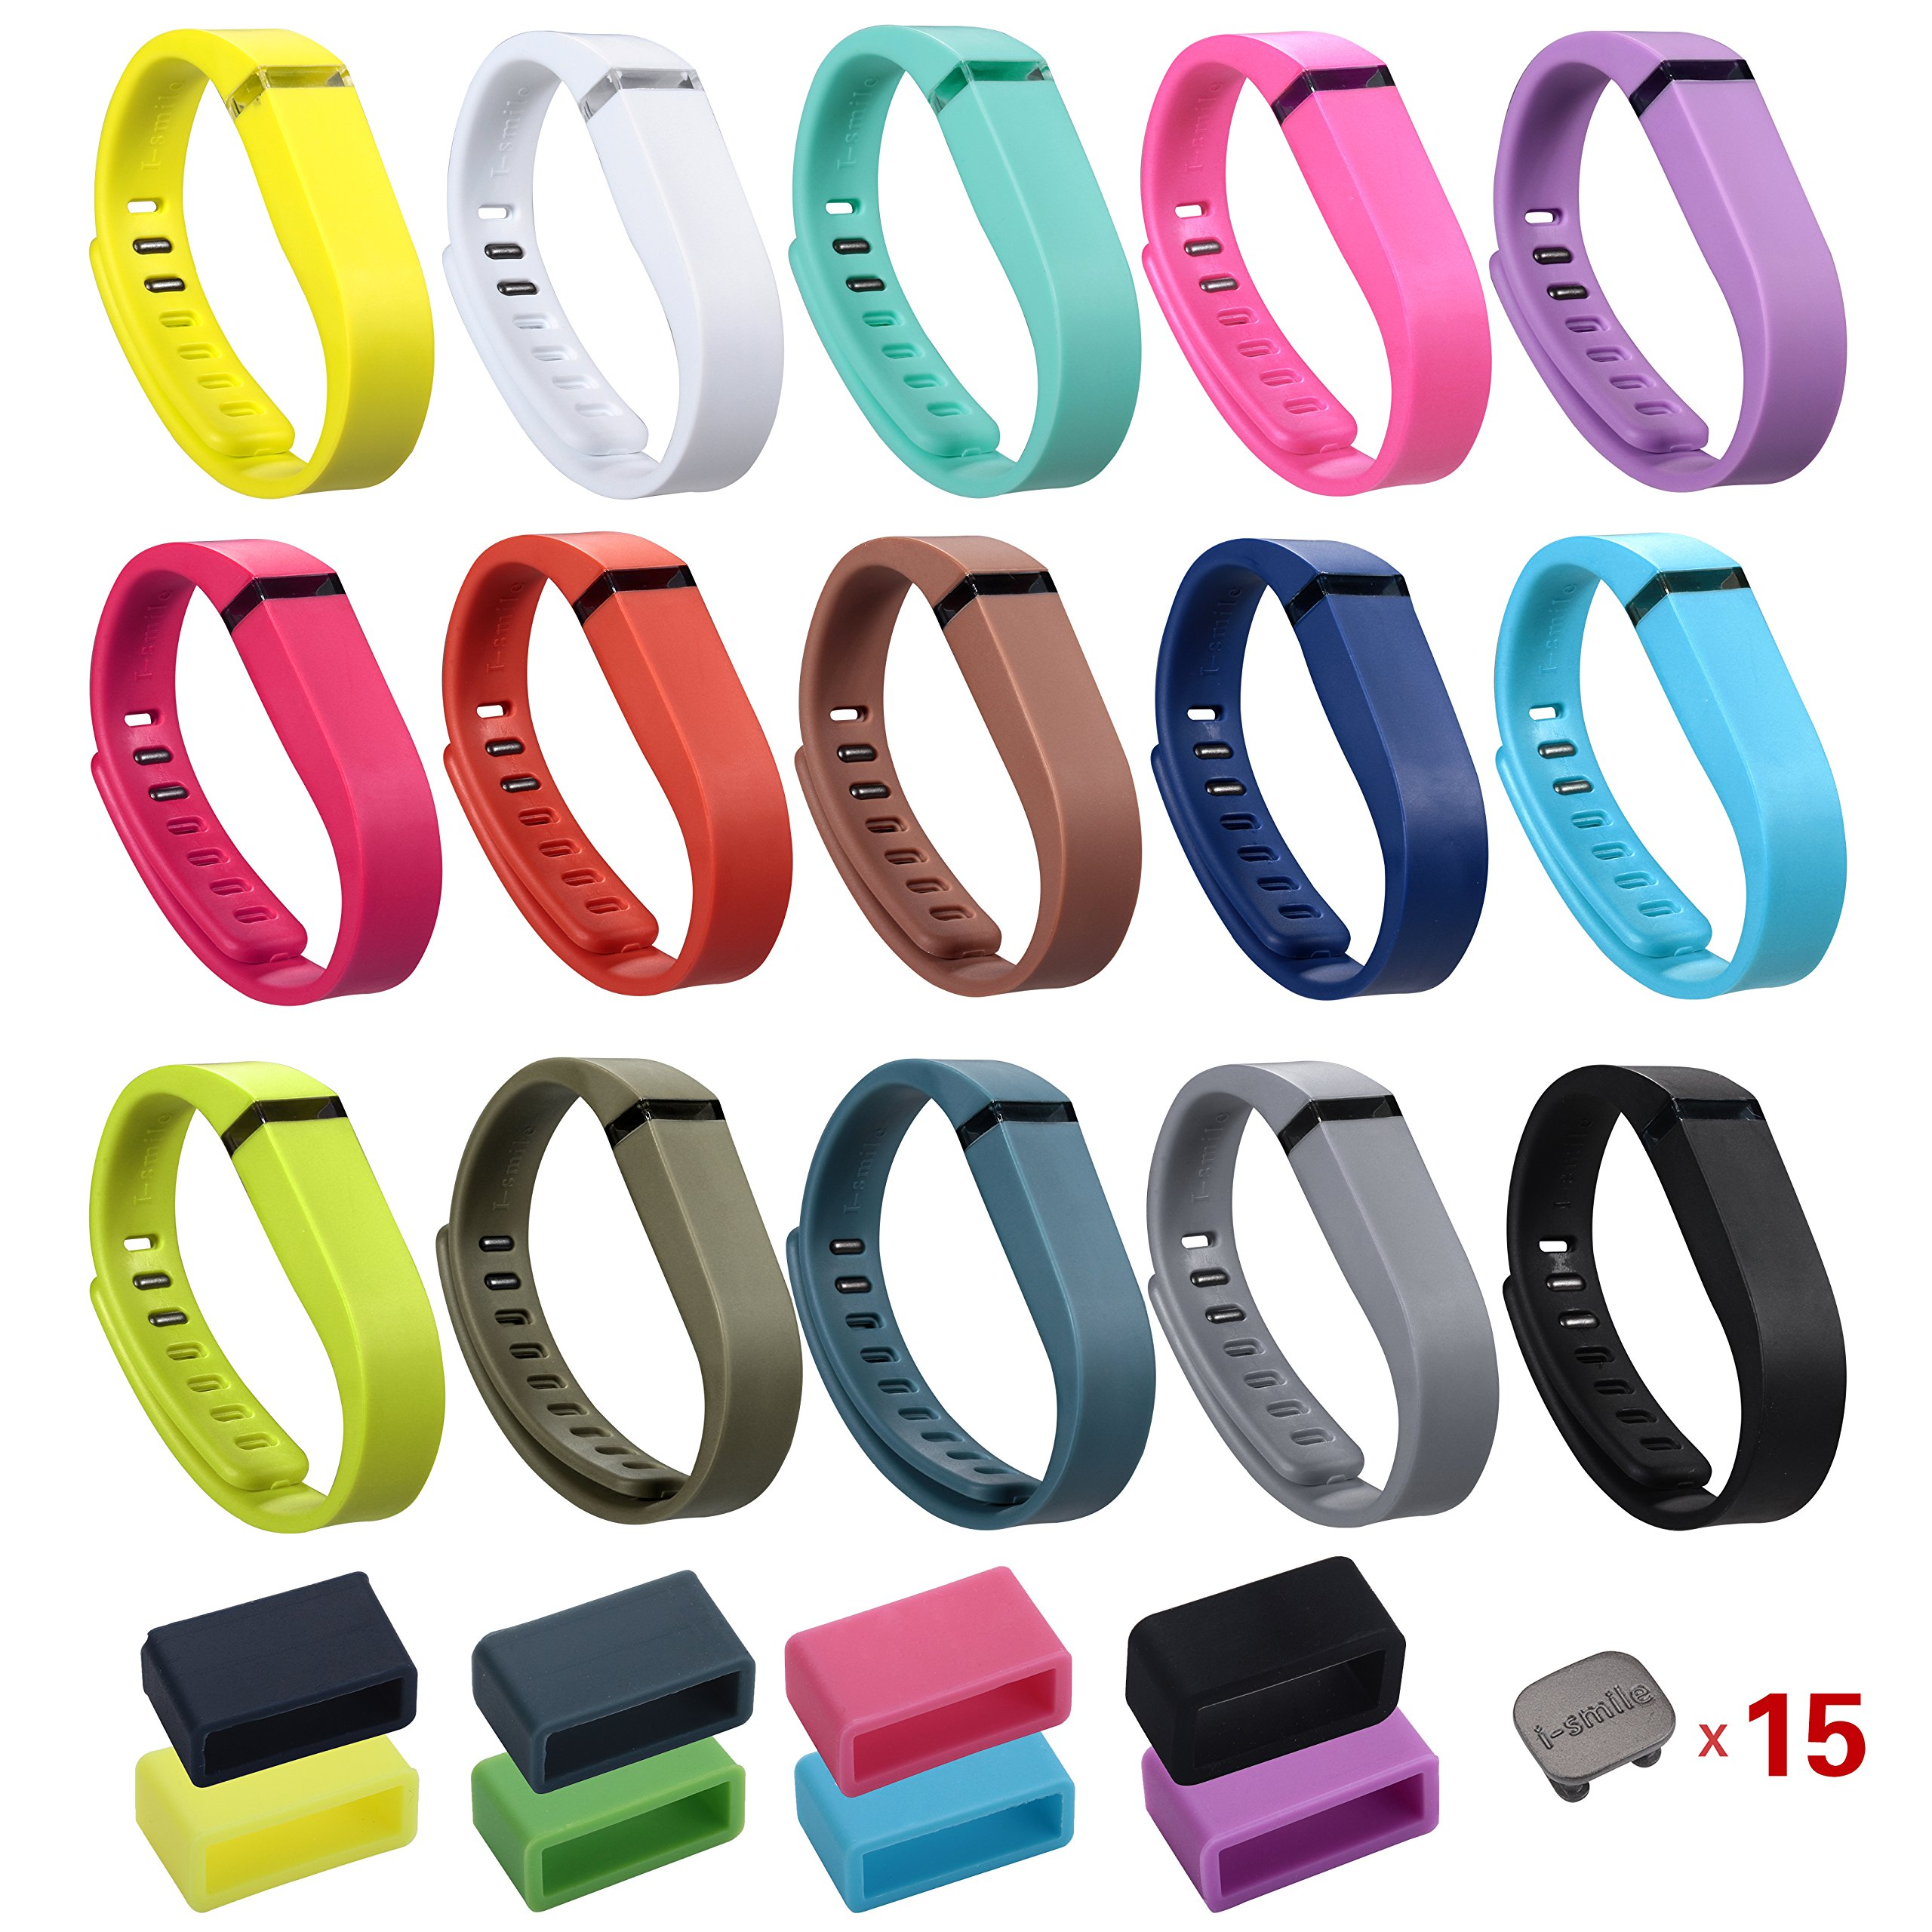 I-SMILE 15PCS Replacement Bands with Metal Clasps for Fitbit Flex / Wireless Activity Bracelet Sport Wristband(No tracker, Replacement Bands Only)